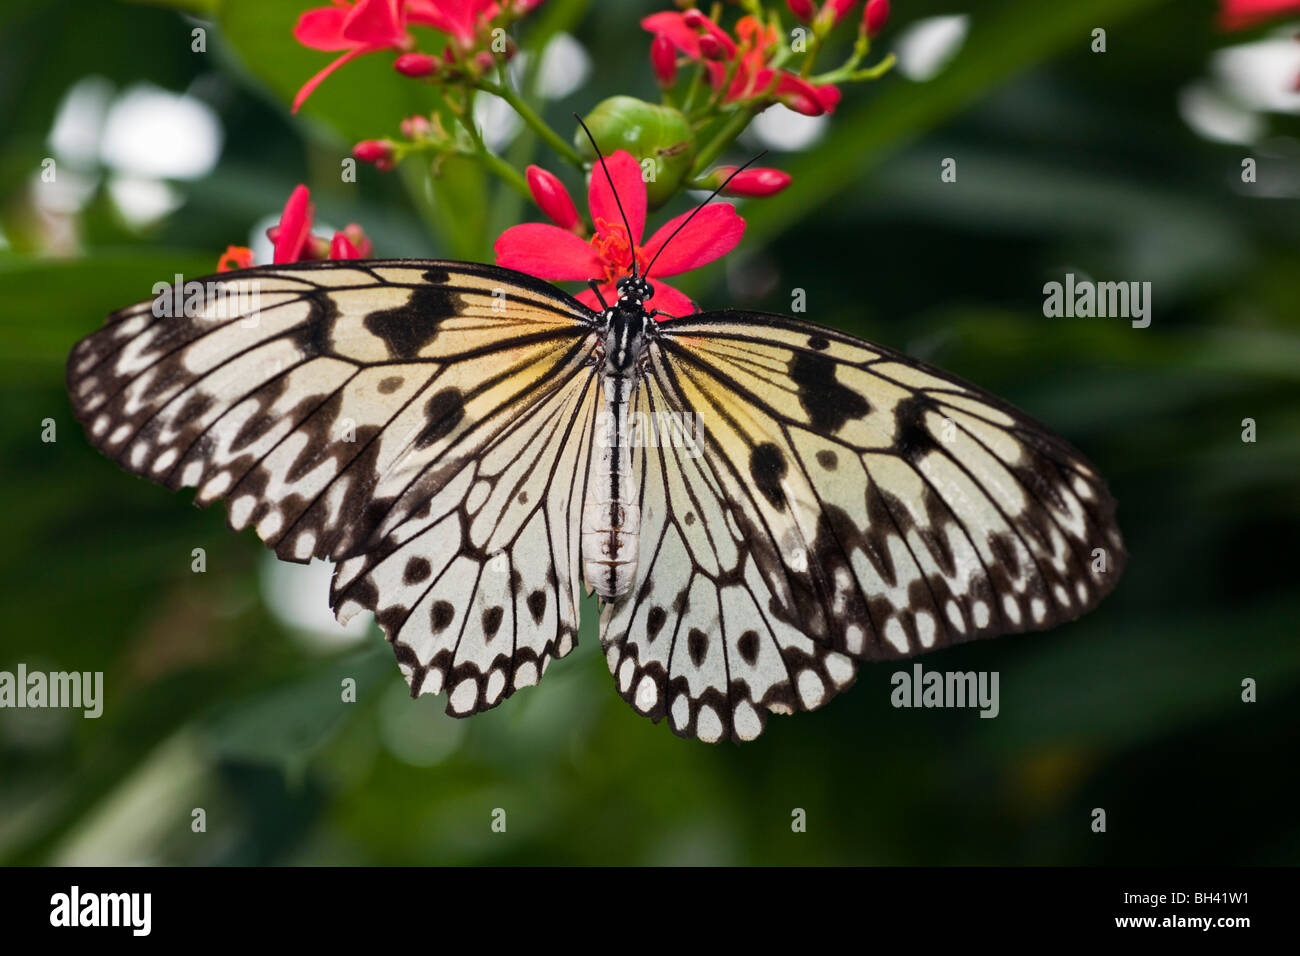 Tree Nymph (Idea leuconoe) Butterfly, Rice Paper Butterfly, Paper Kite Butterfly - Stock Image